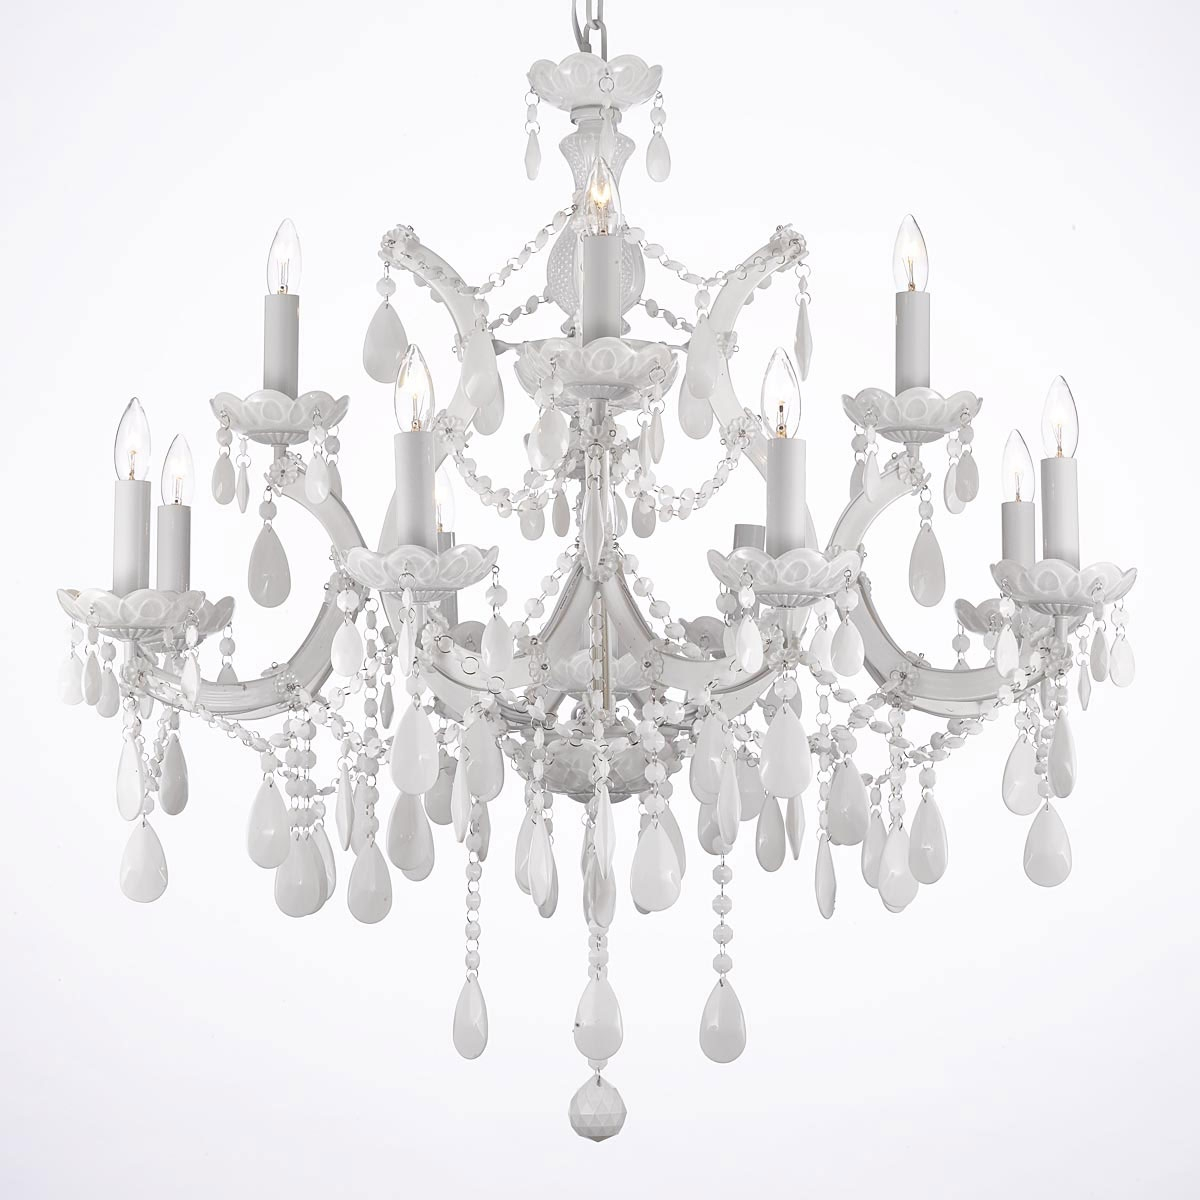 Chandelier Chandeliers Crystal Chandelier Crystal Chandeliers Pertaining To White Chandelier (Image 4 of 15)